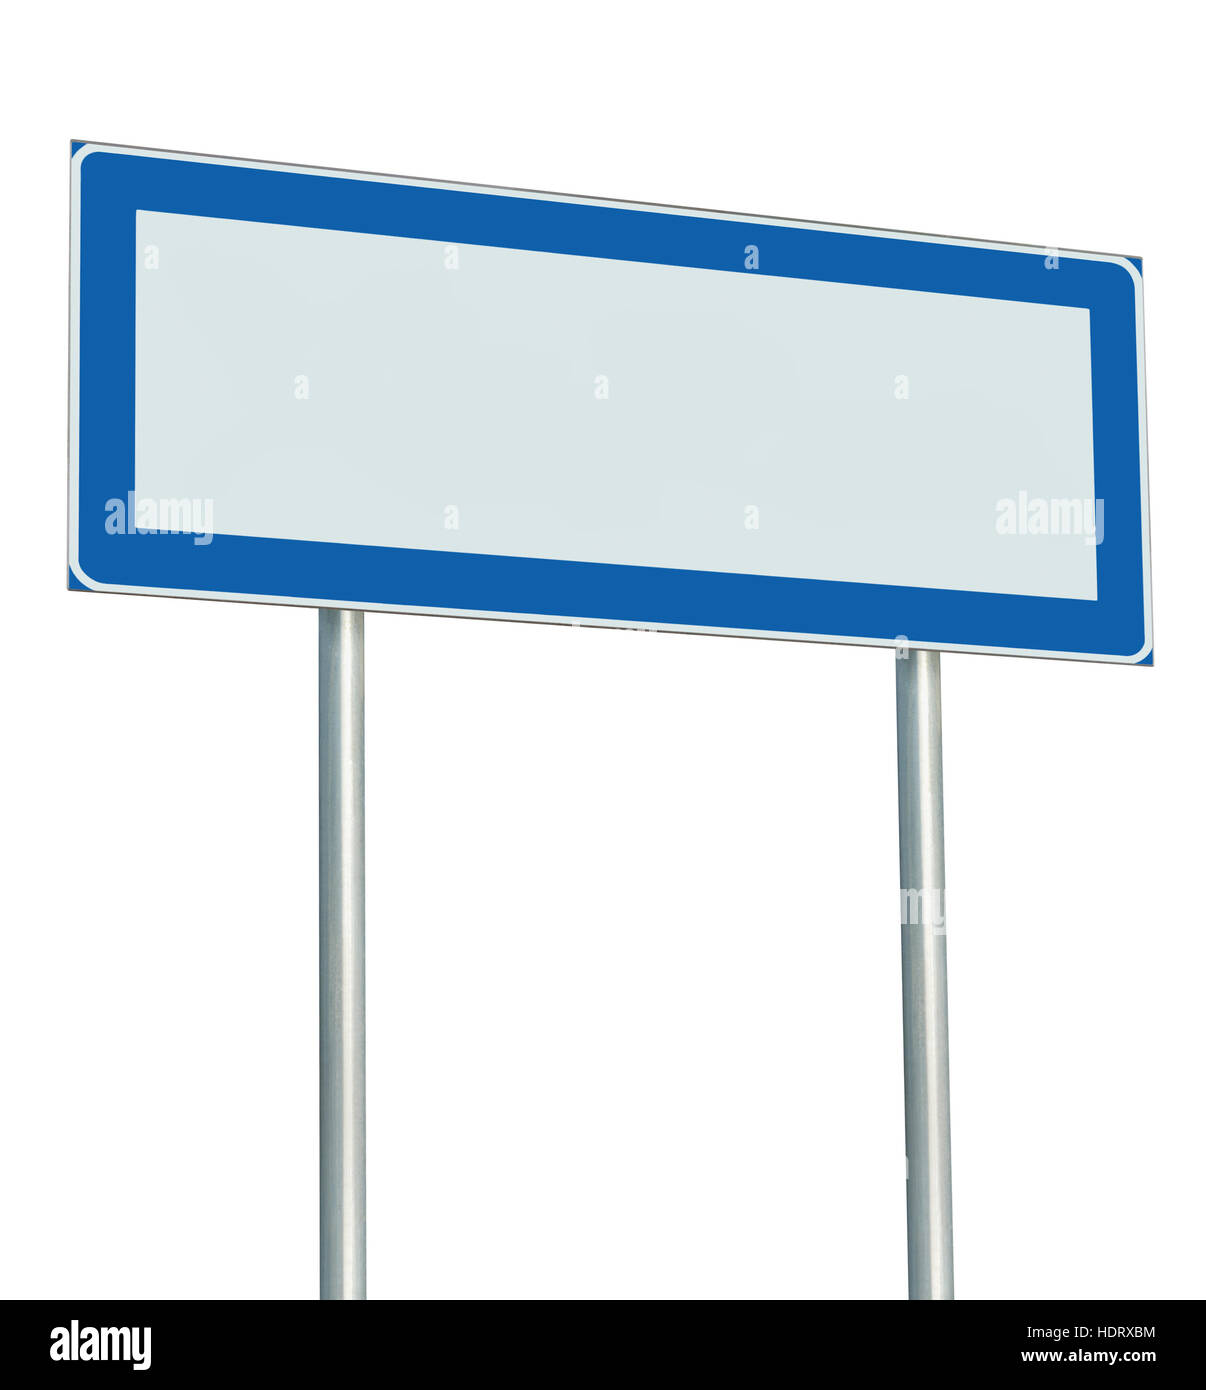 Information Road Sign Isolated, Blank Empty Signpost Copy Space For Icons, Pictograms, Large Roadside Info Signage - Stock Image